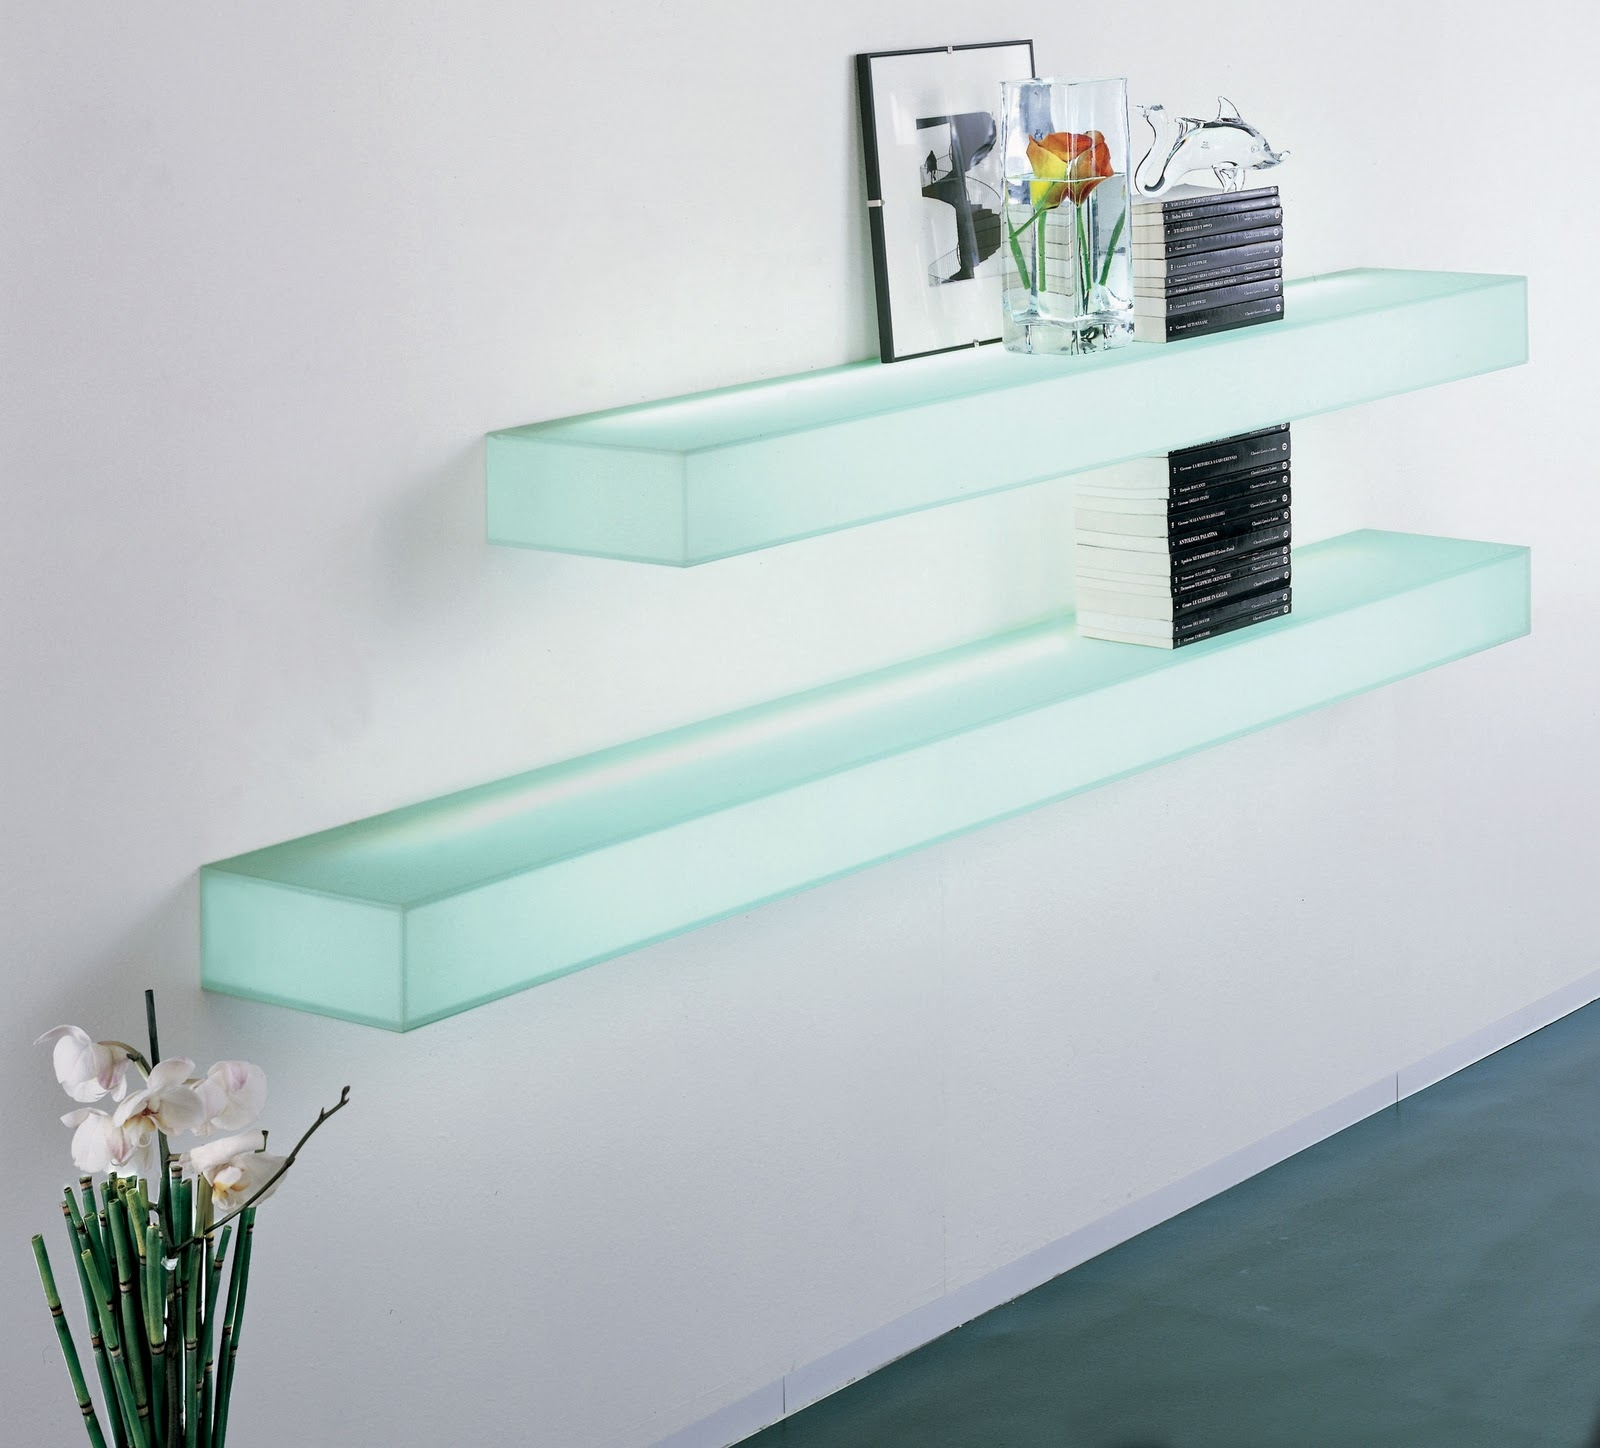 Furniture Awesome Illuminated Glass Bar Shelves Led Shelves W Pertaining To Illuminated Glass Shelves (#2 of 12)